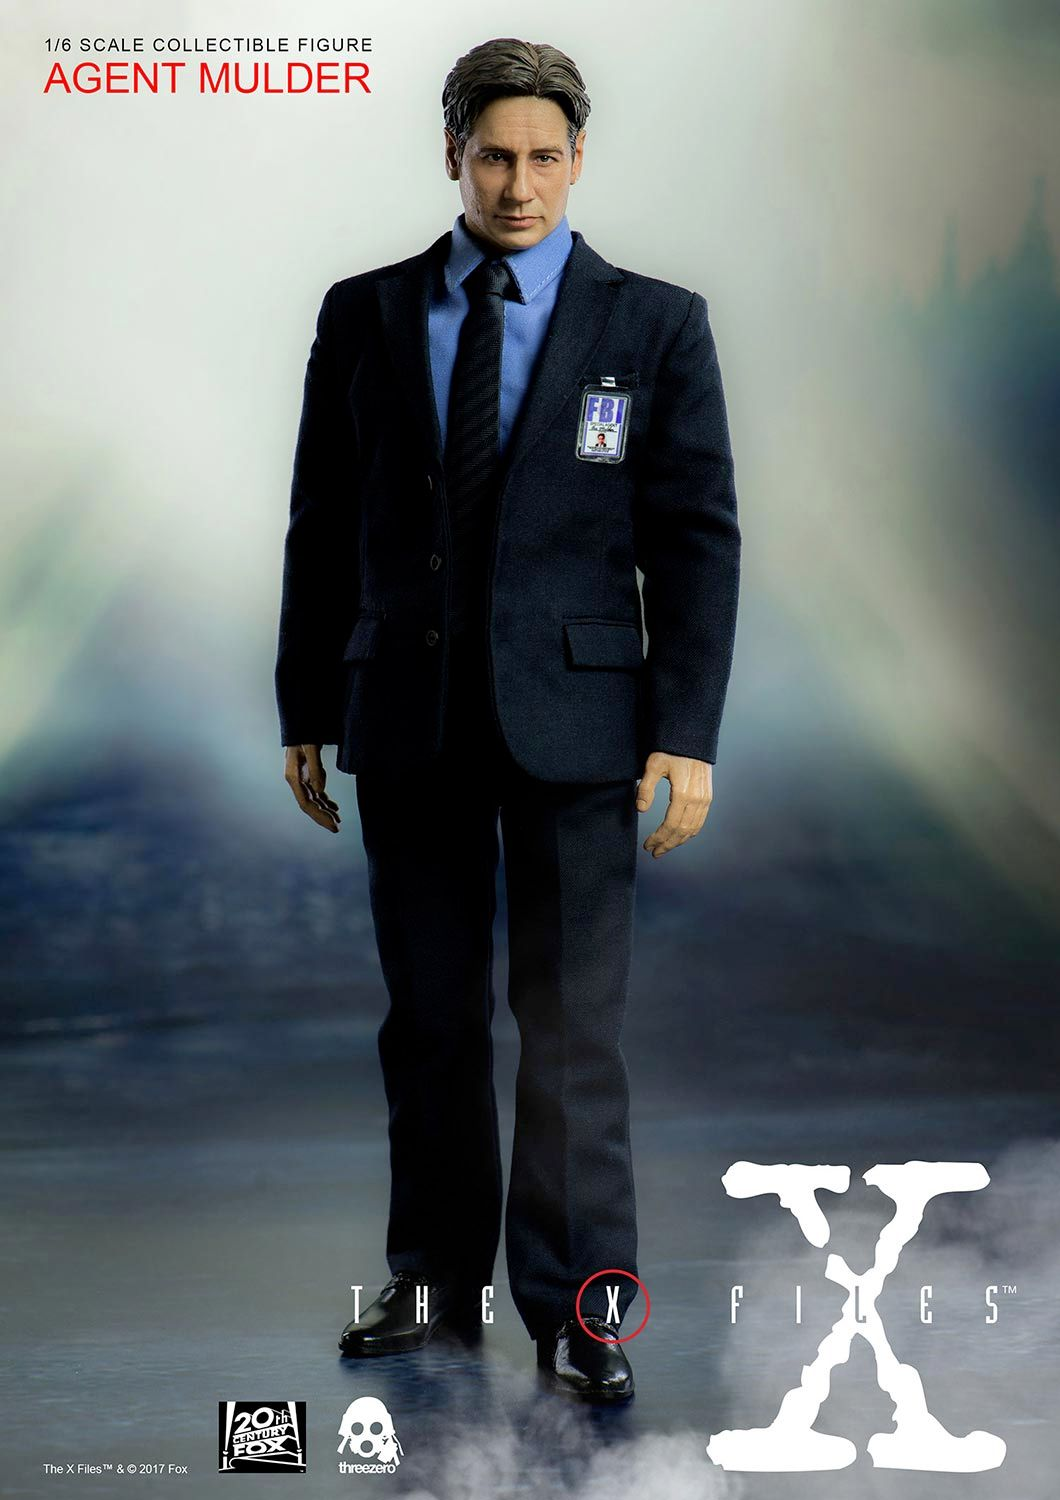 Agent-Mulder-X-Files-Collectible-Figure-ThreeZero-08